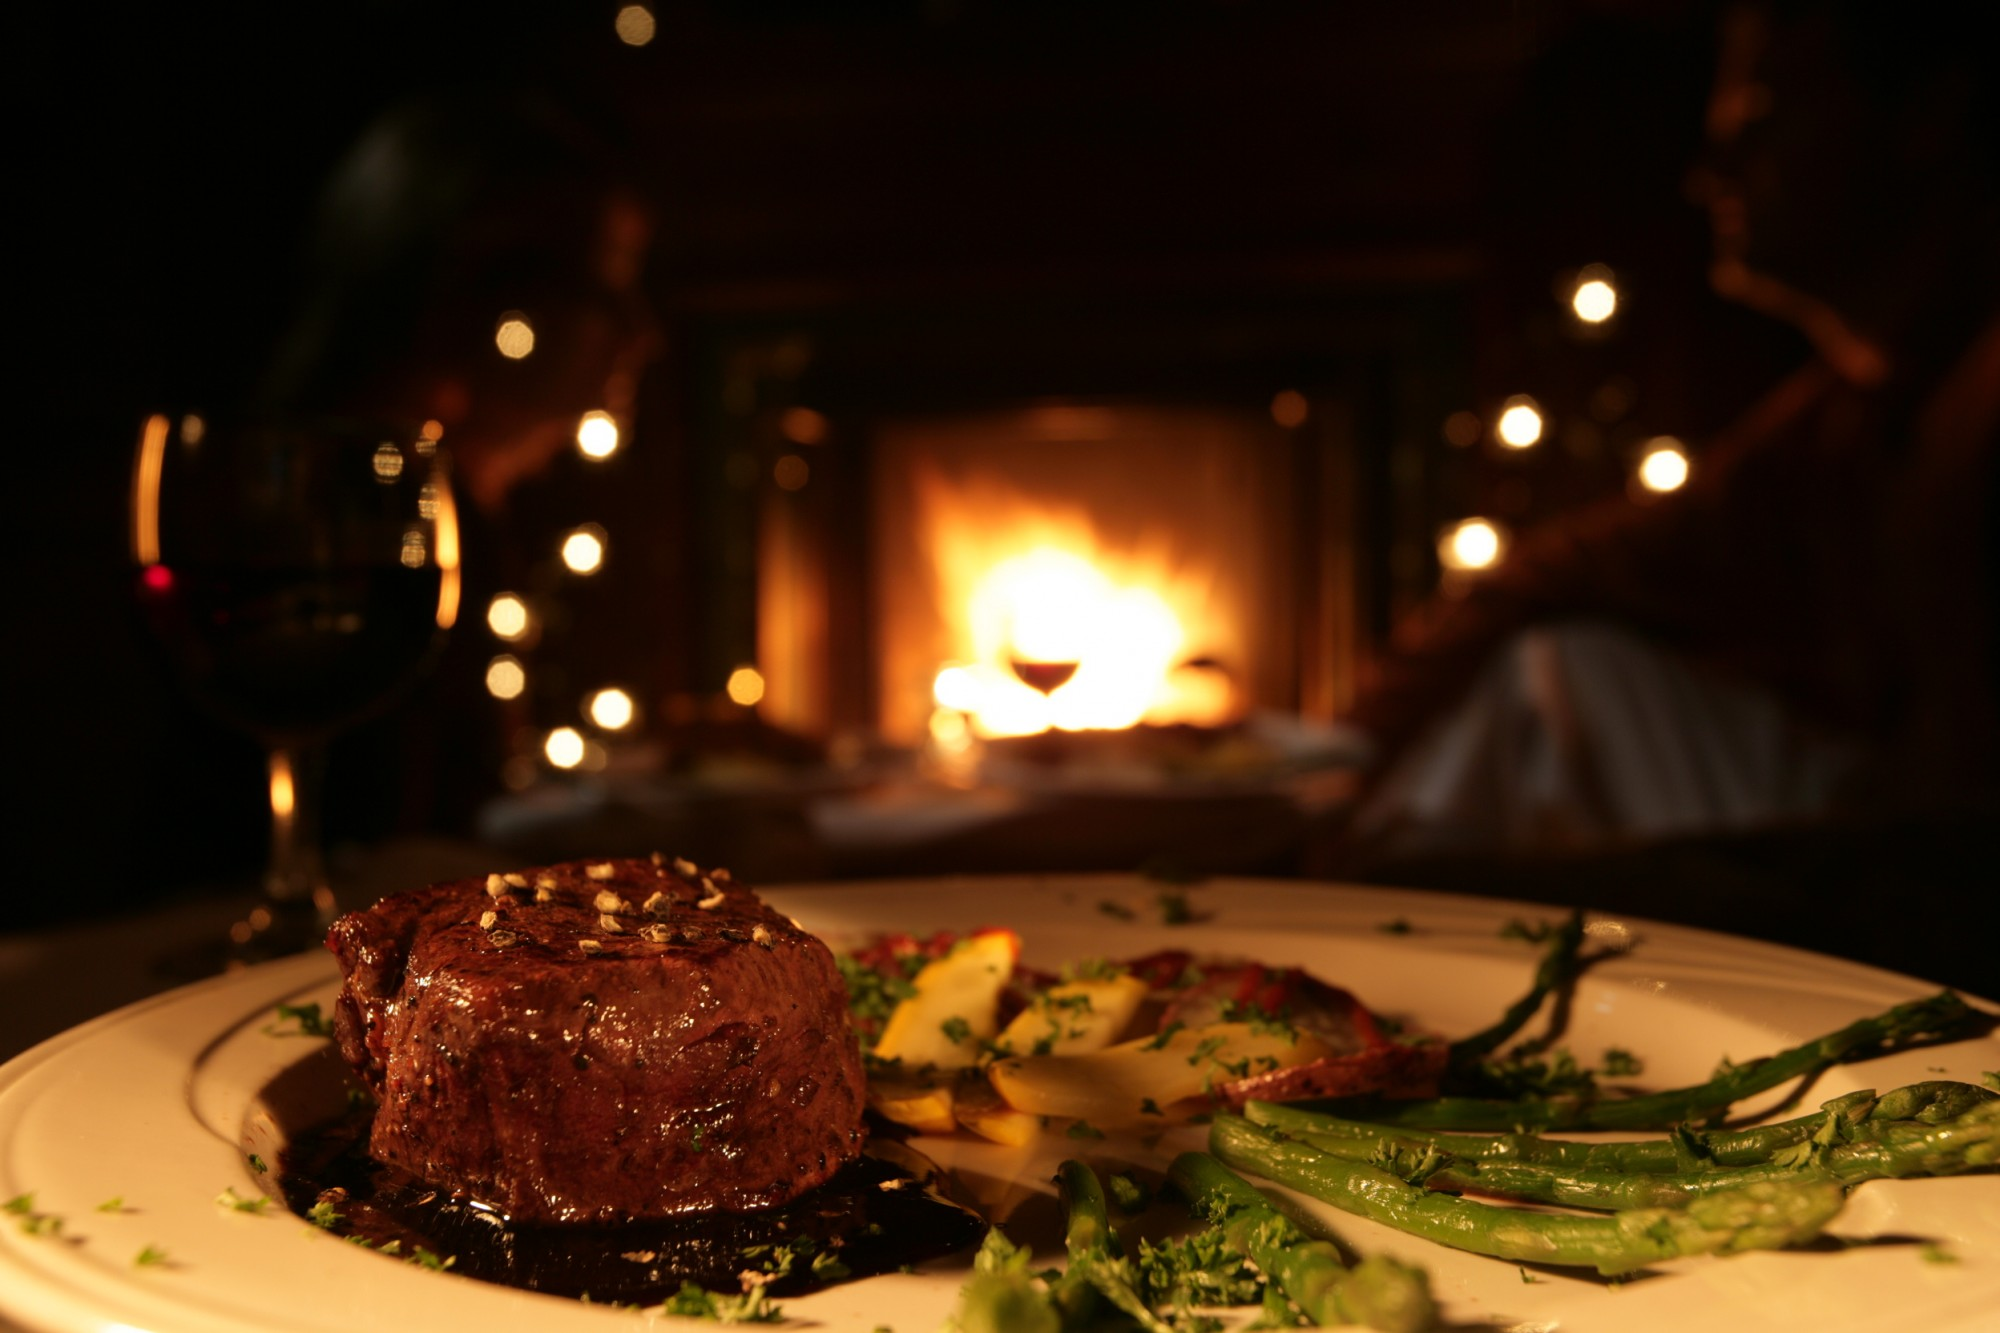 Charming Six Uses Beef You Never Thought Two Video Steak Dinner Steak Dinner Two Reddit nice food Steak Dinner For Two